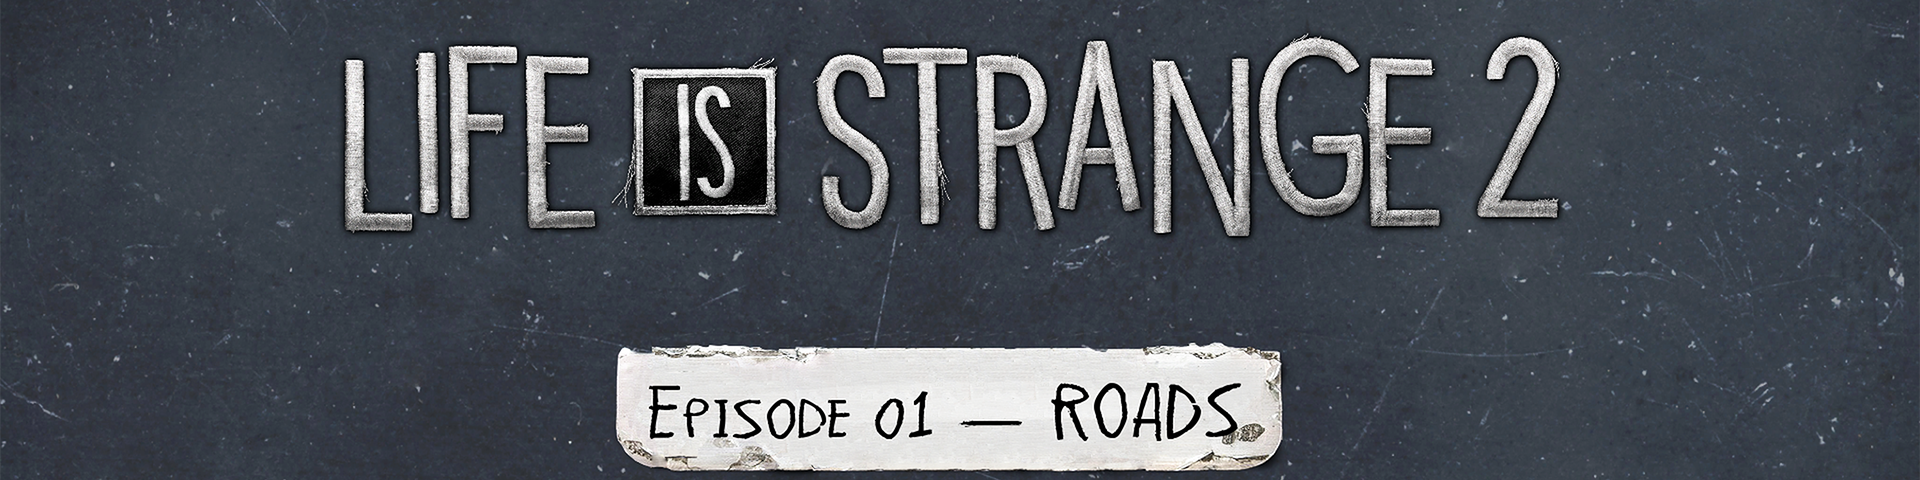 LiS 2 Roads Review Header.png